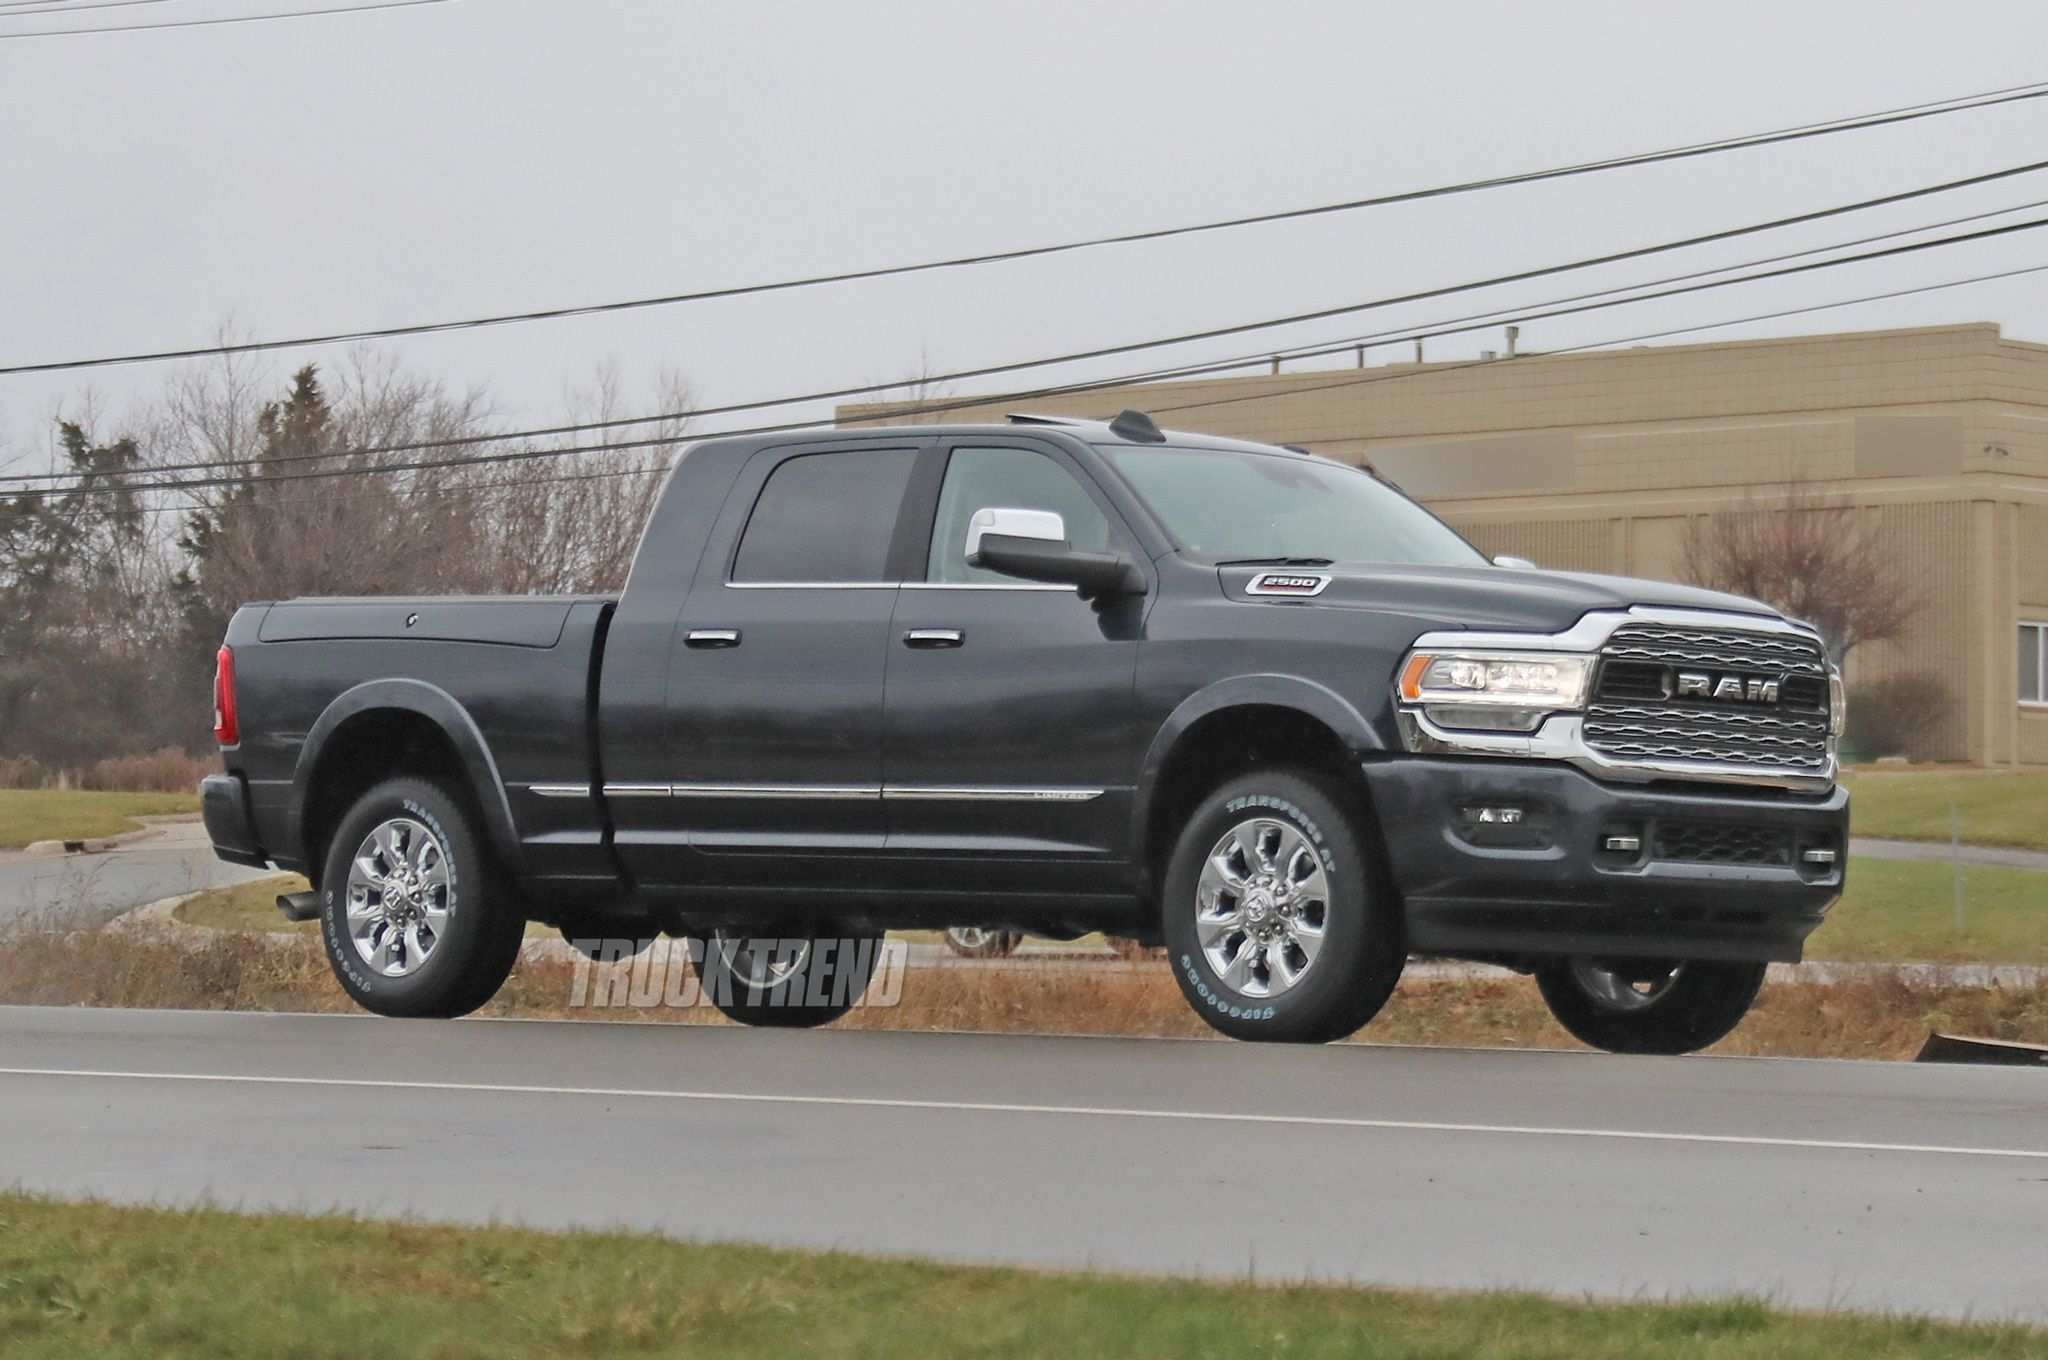 49 New 2020 Ram 2500 Diesel Prices